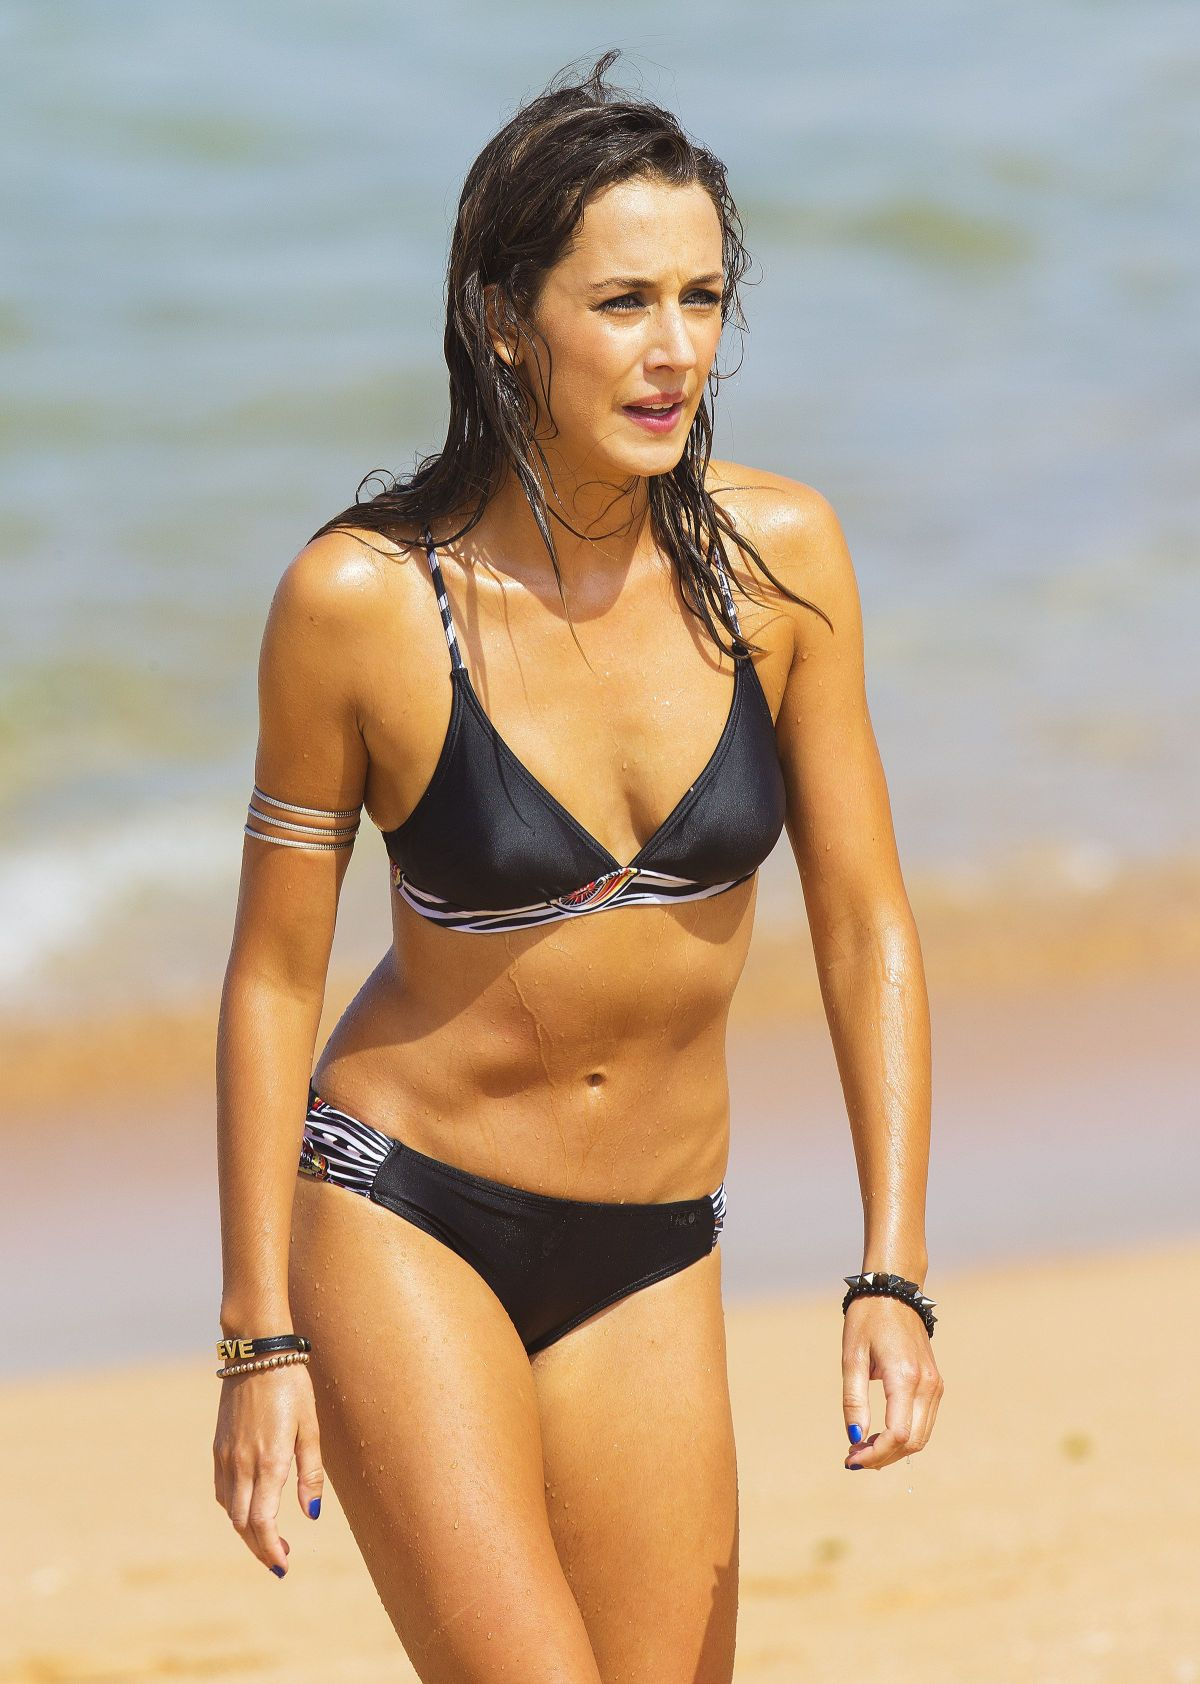 ISABELLA GIOVINAZZO on the Set of Home & Away on the Beach in Sydney in Australia